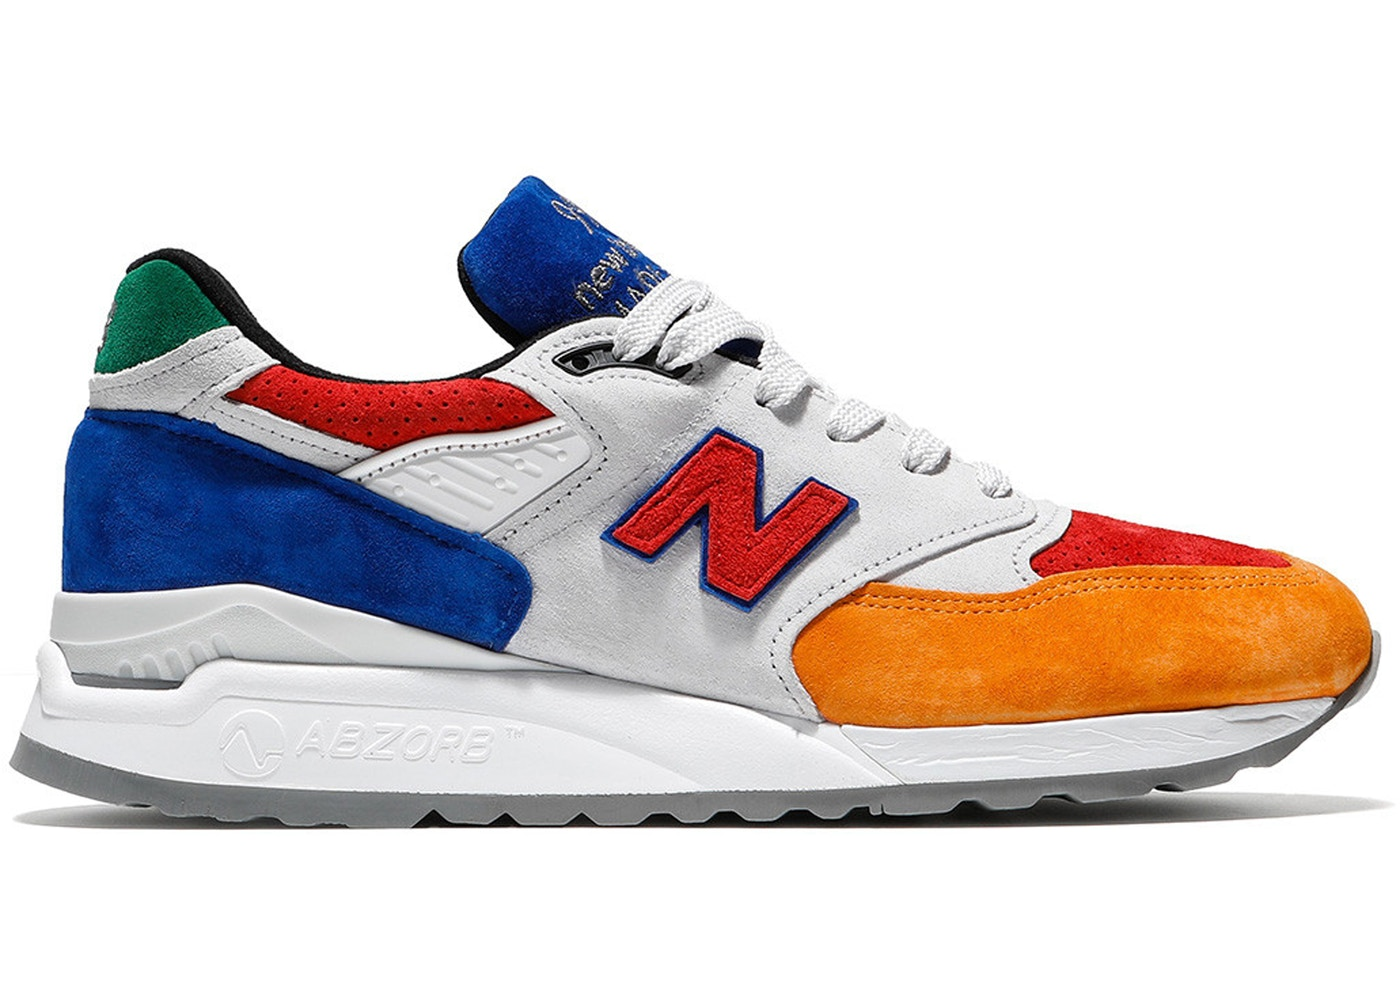 the latest d56ac a1f57 New Balance Size 18 Shoes - Release Date